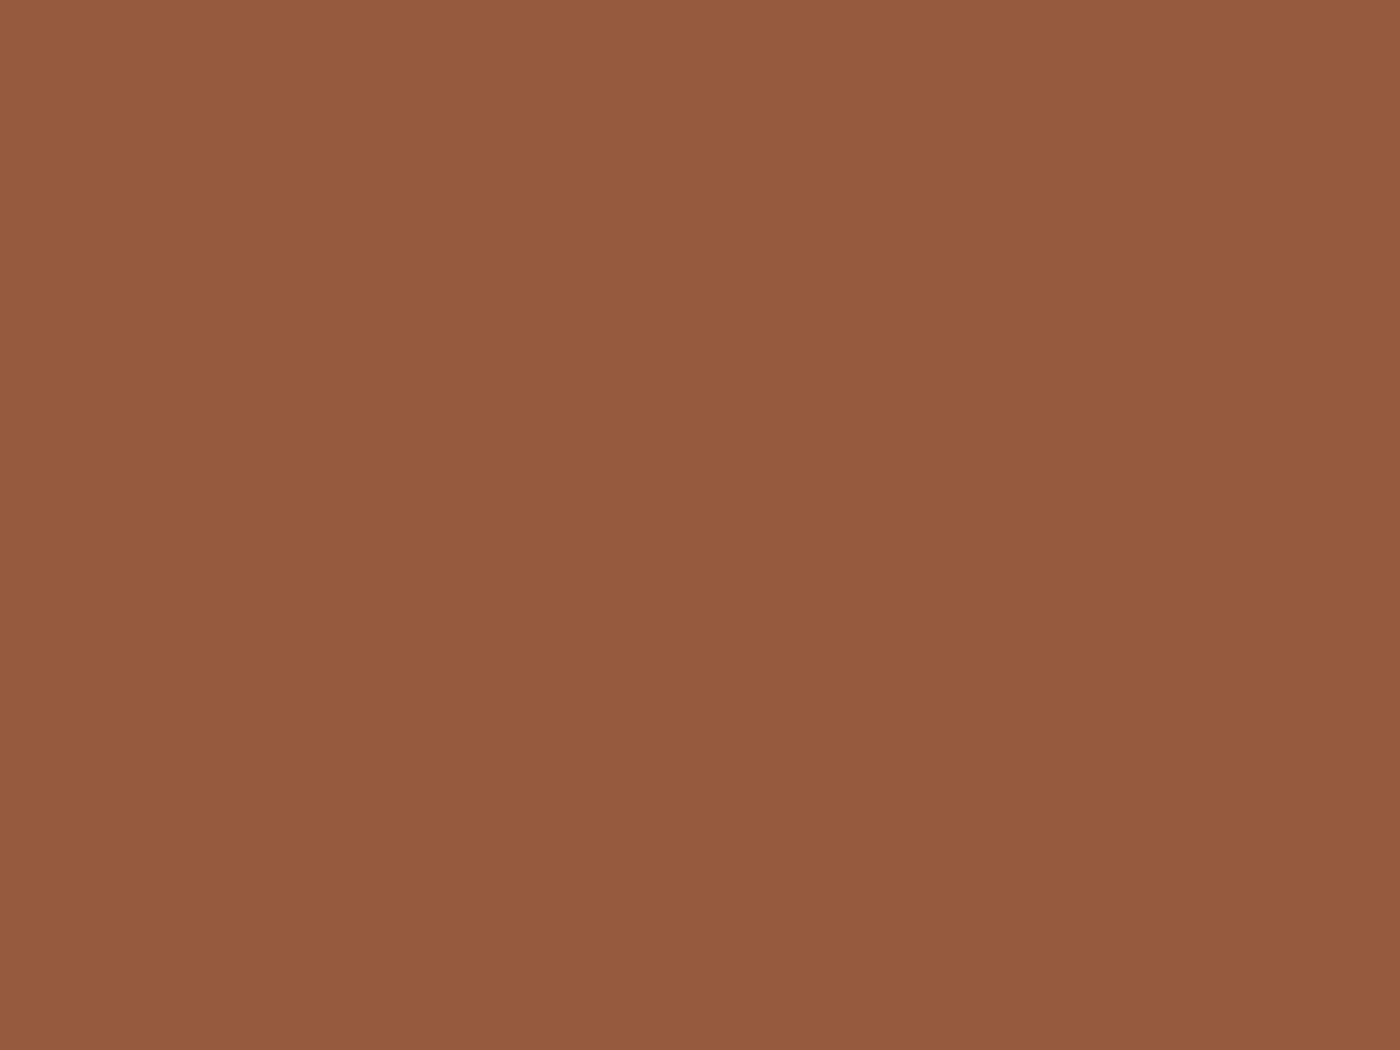 1400x1050 Coconut Solid Color Background